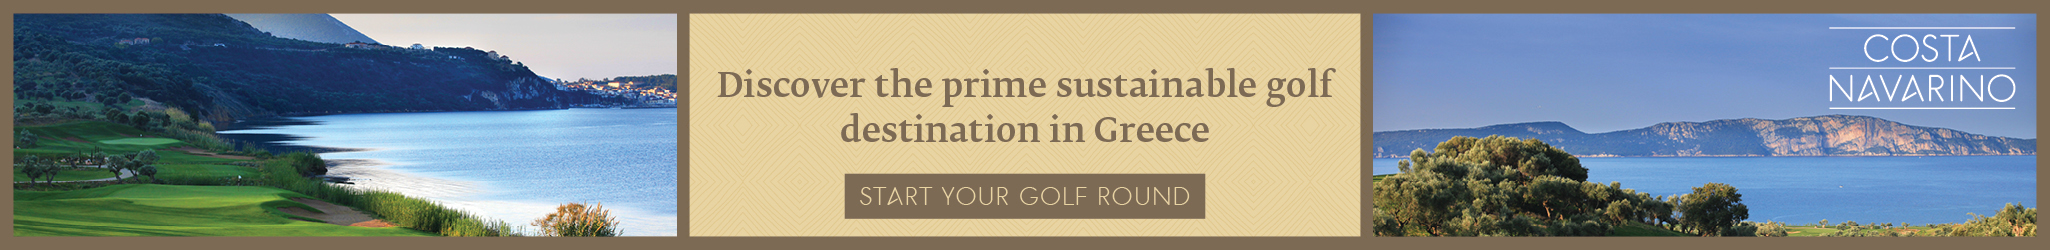 Discover the prime sustainable golf destination in greece